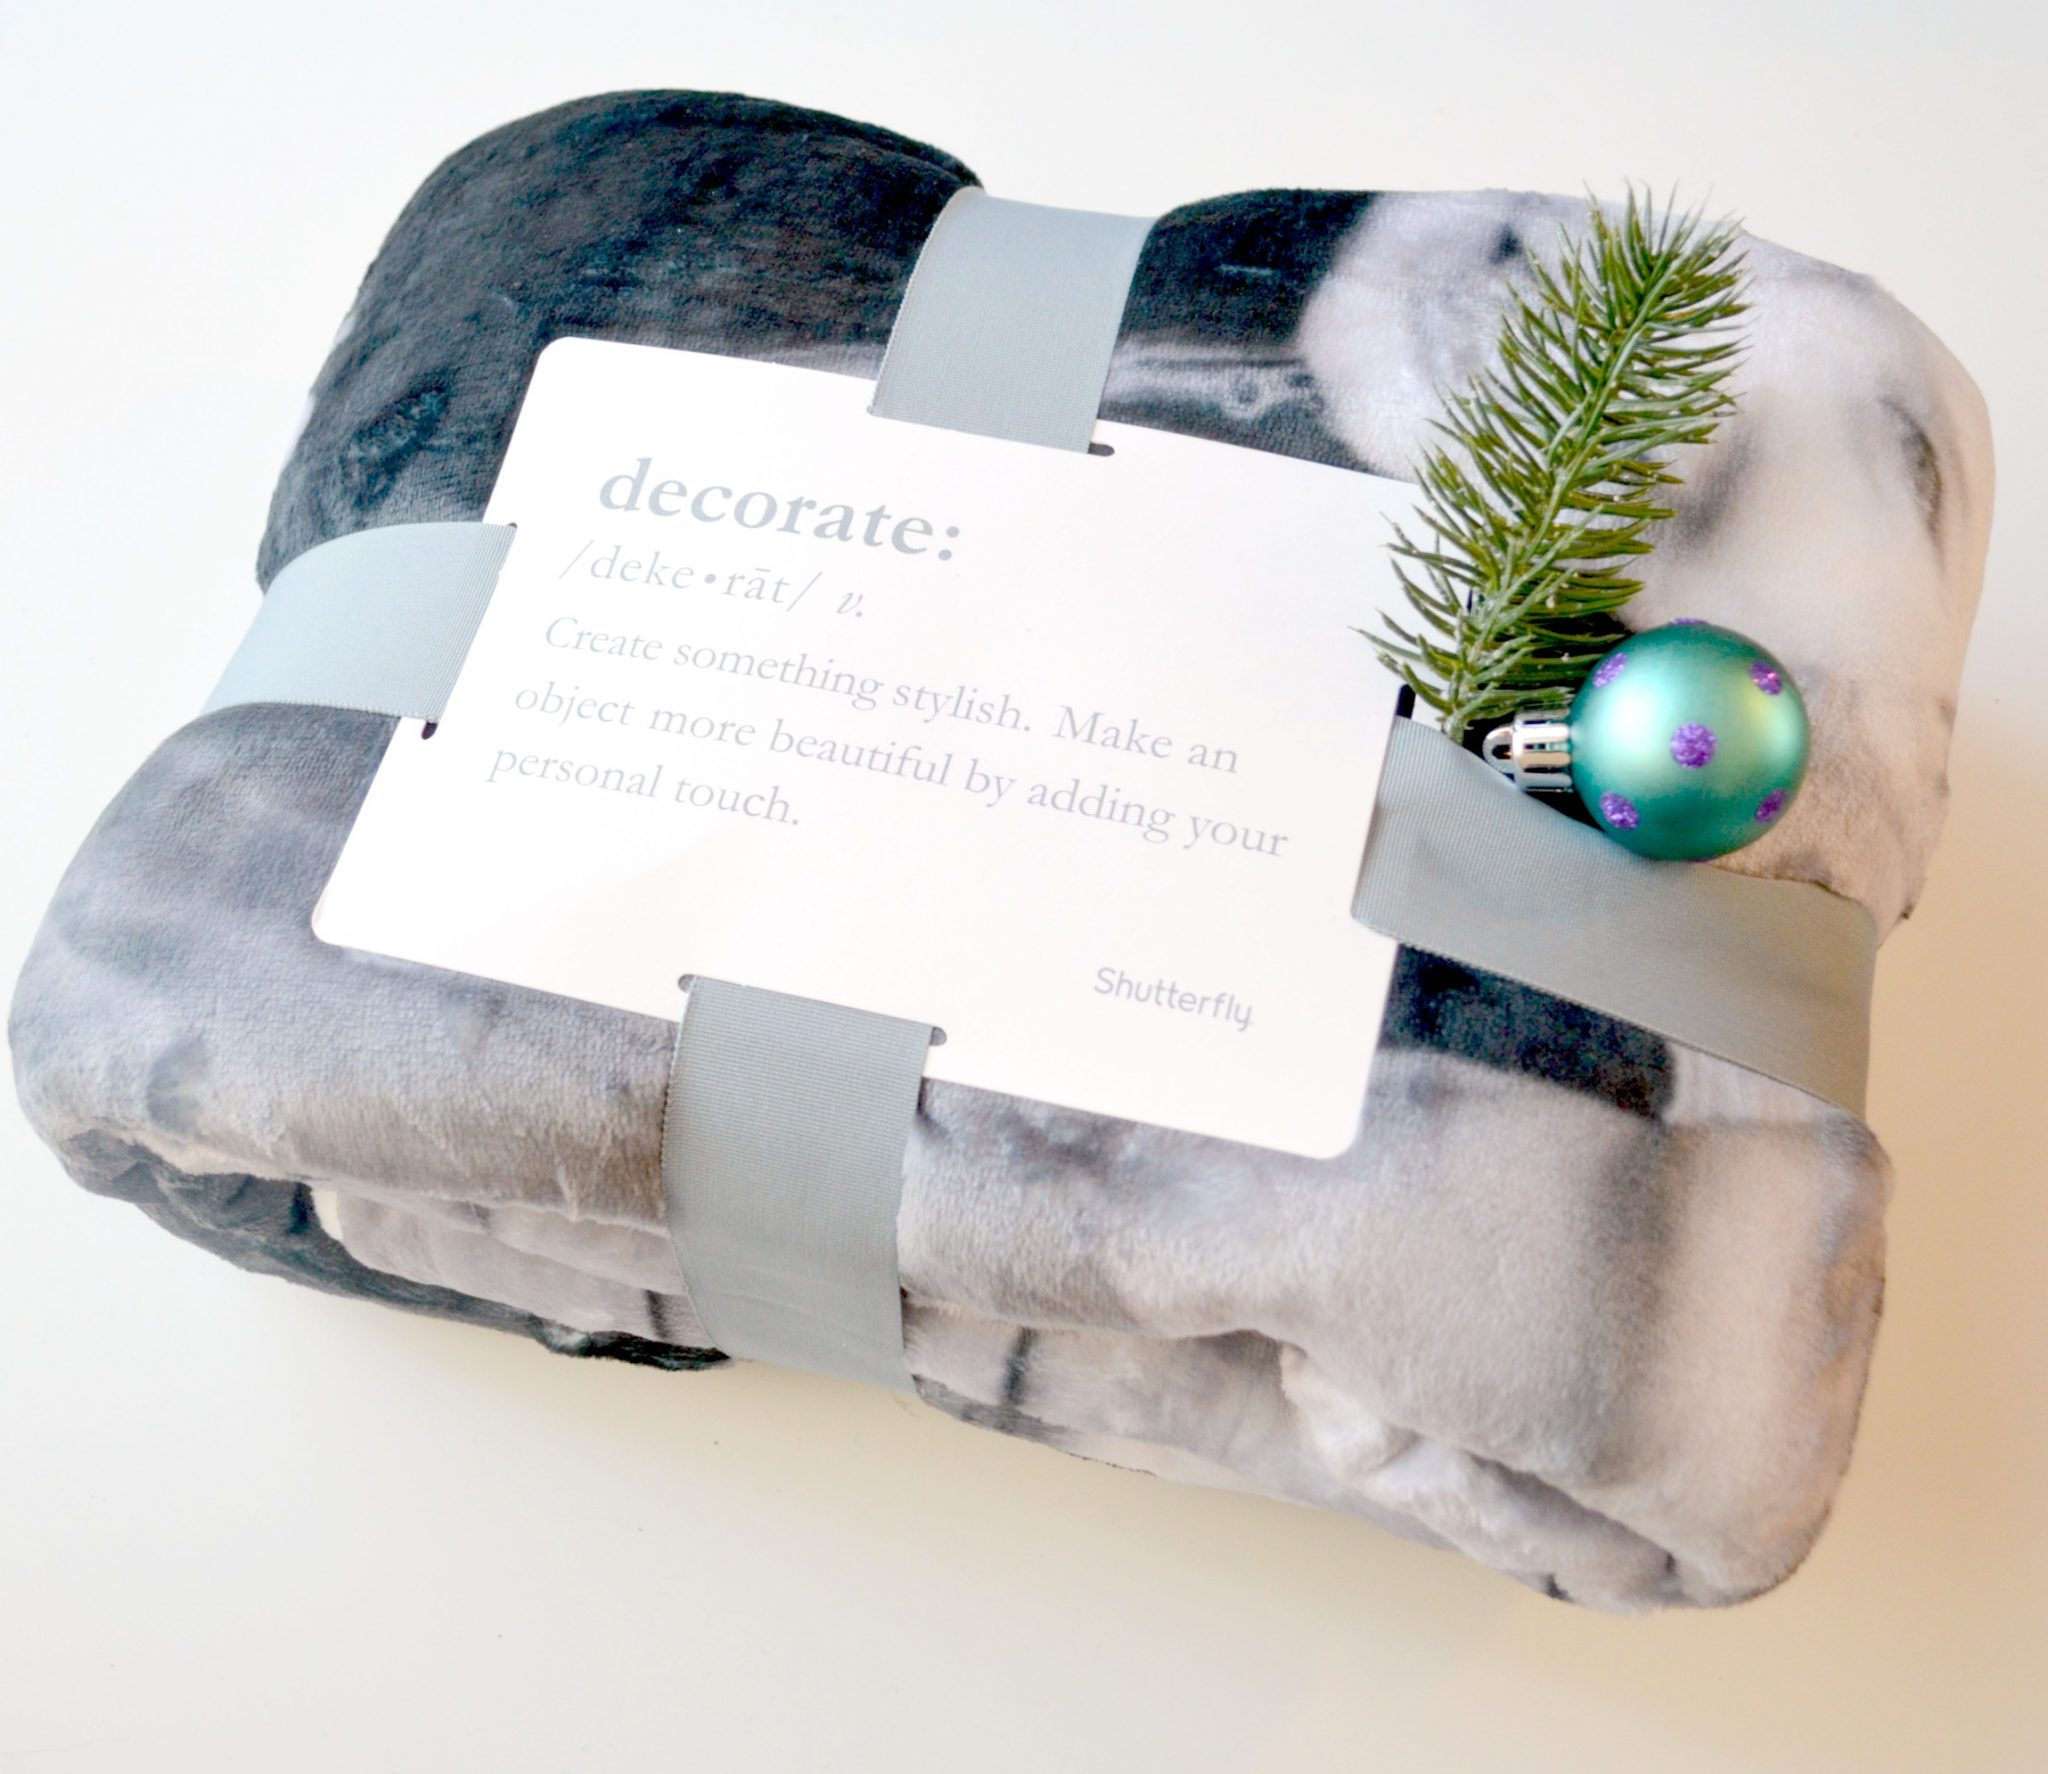 Personalized Gifts For Everyone From Shutterfly Amy Latta